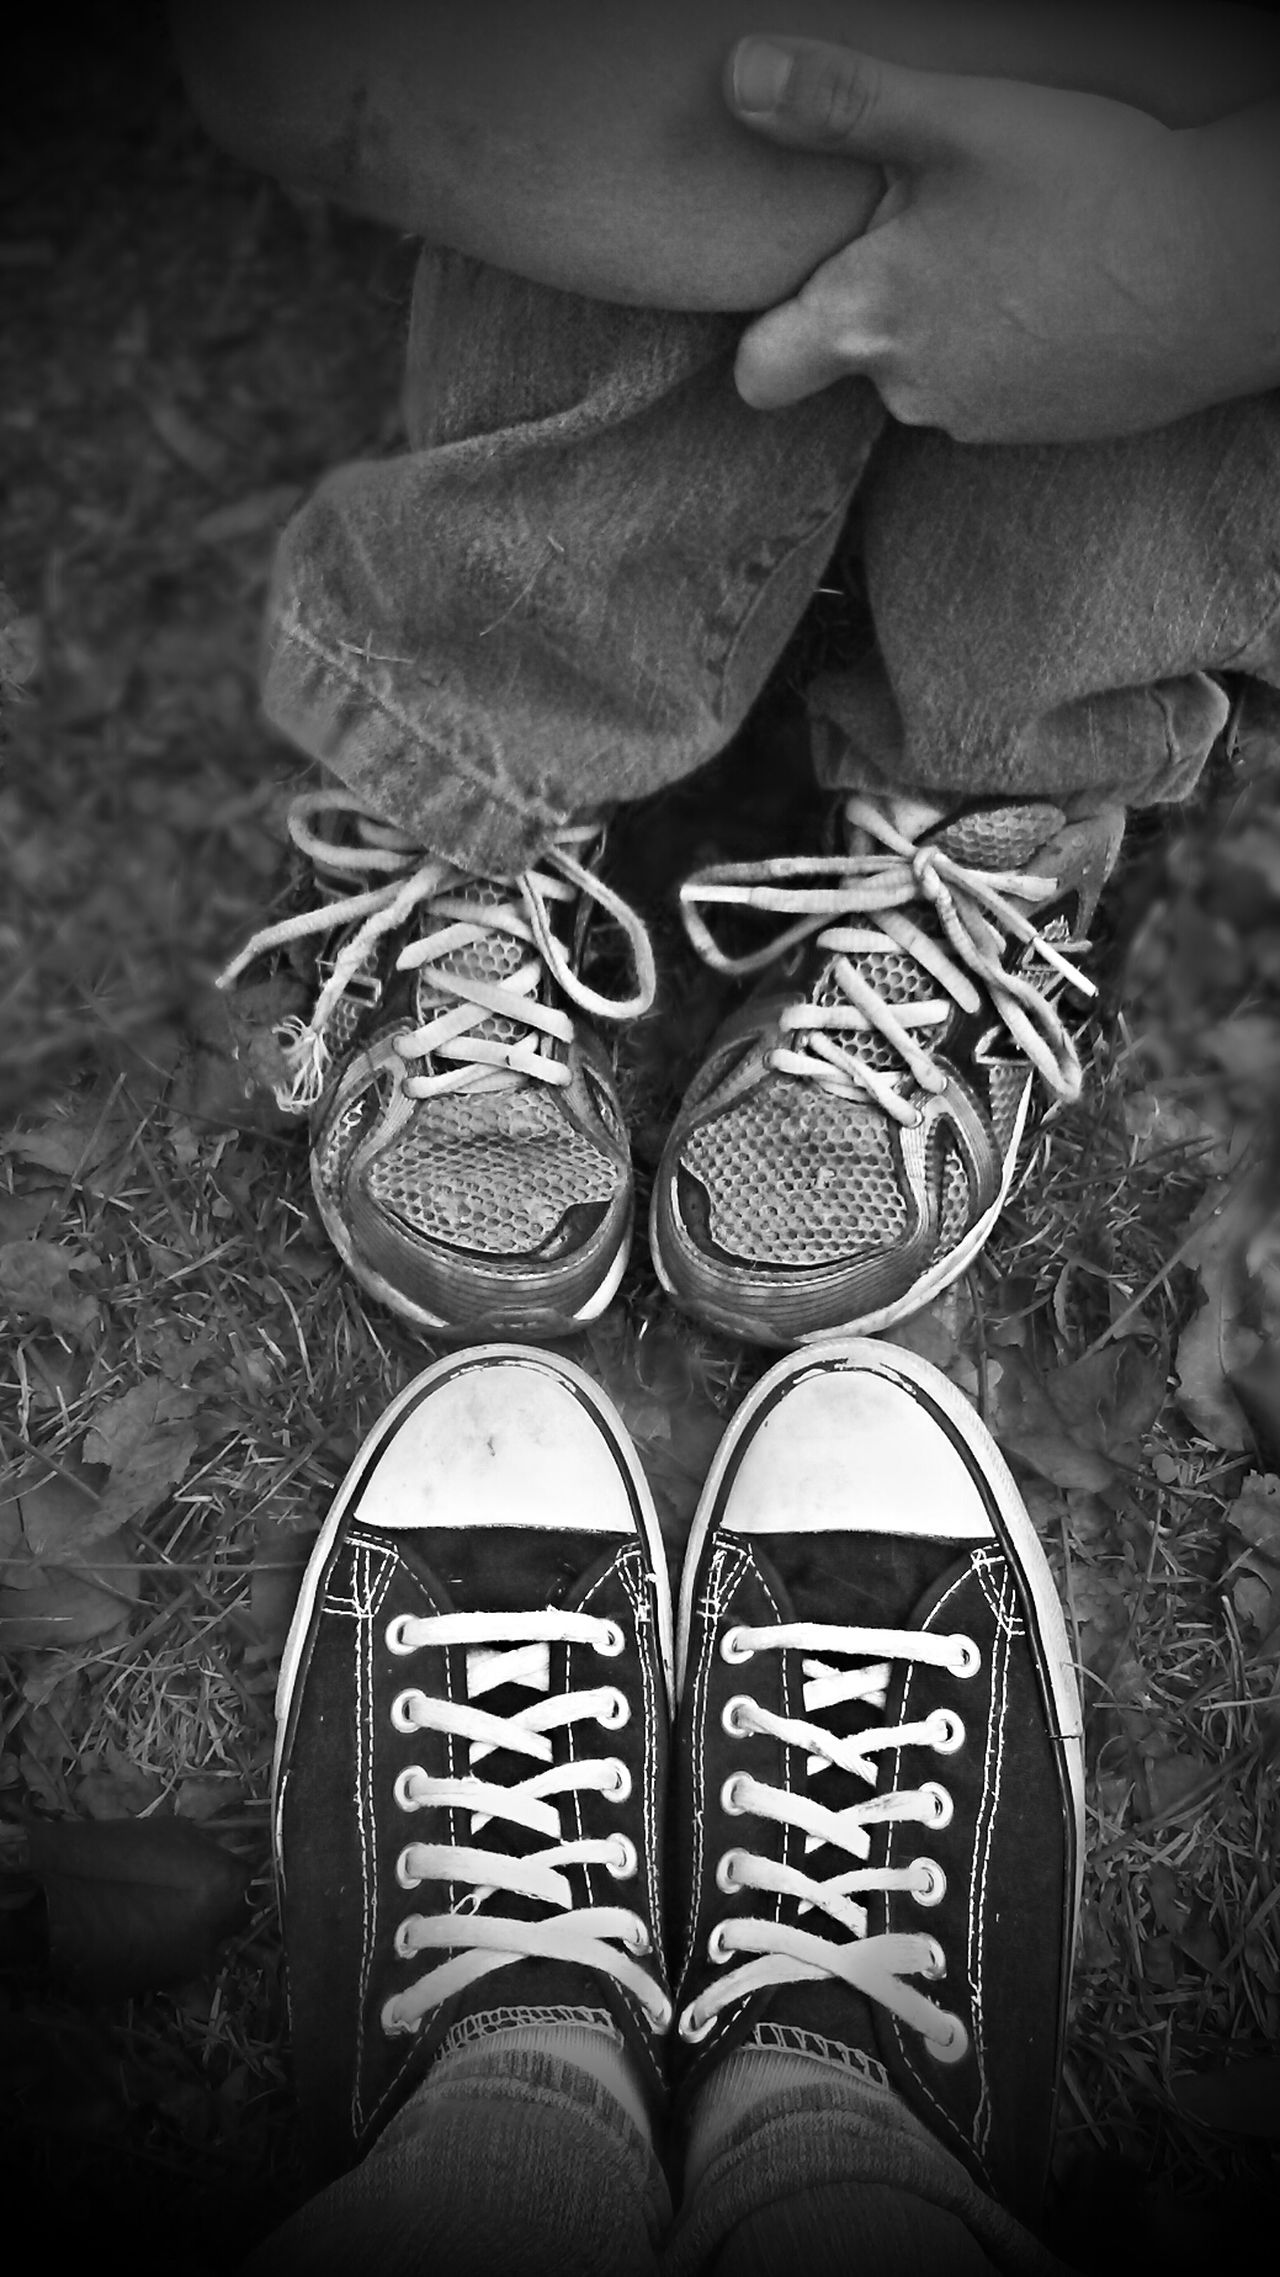 Shoe Human Body Part Human Leg Low Section Personal Perspective Close-up Real People People Lifestyles Canvas Shoe Day Monochrome Blackandwhite Love Peace Og Picturesque Mobile AL Tranquility Southern Son Mother Play Playground